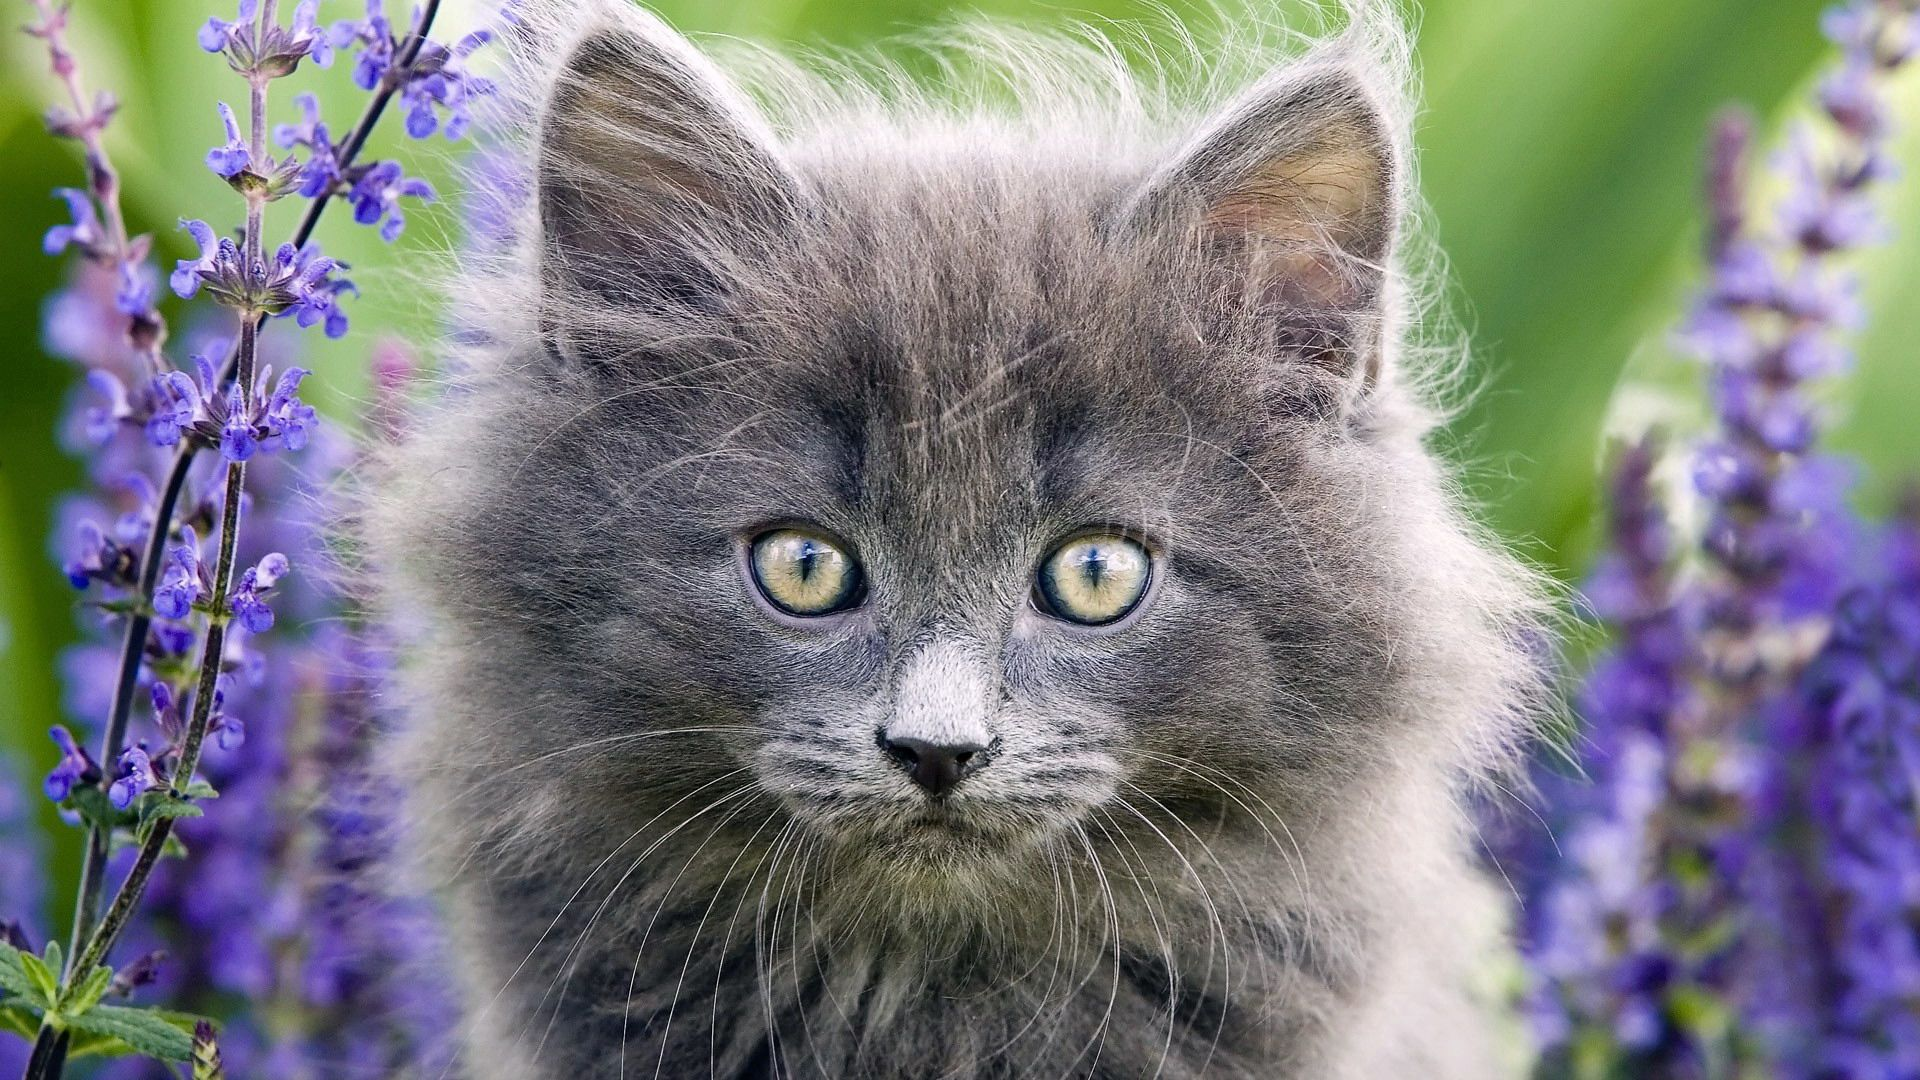 92524 Screensavers and Wallpapers Kittens for phone. Download Animals, Grass, Fluffy, Muzzle, Sight, Opinion, Kittens pictures for free